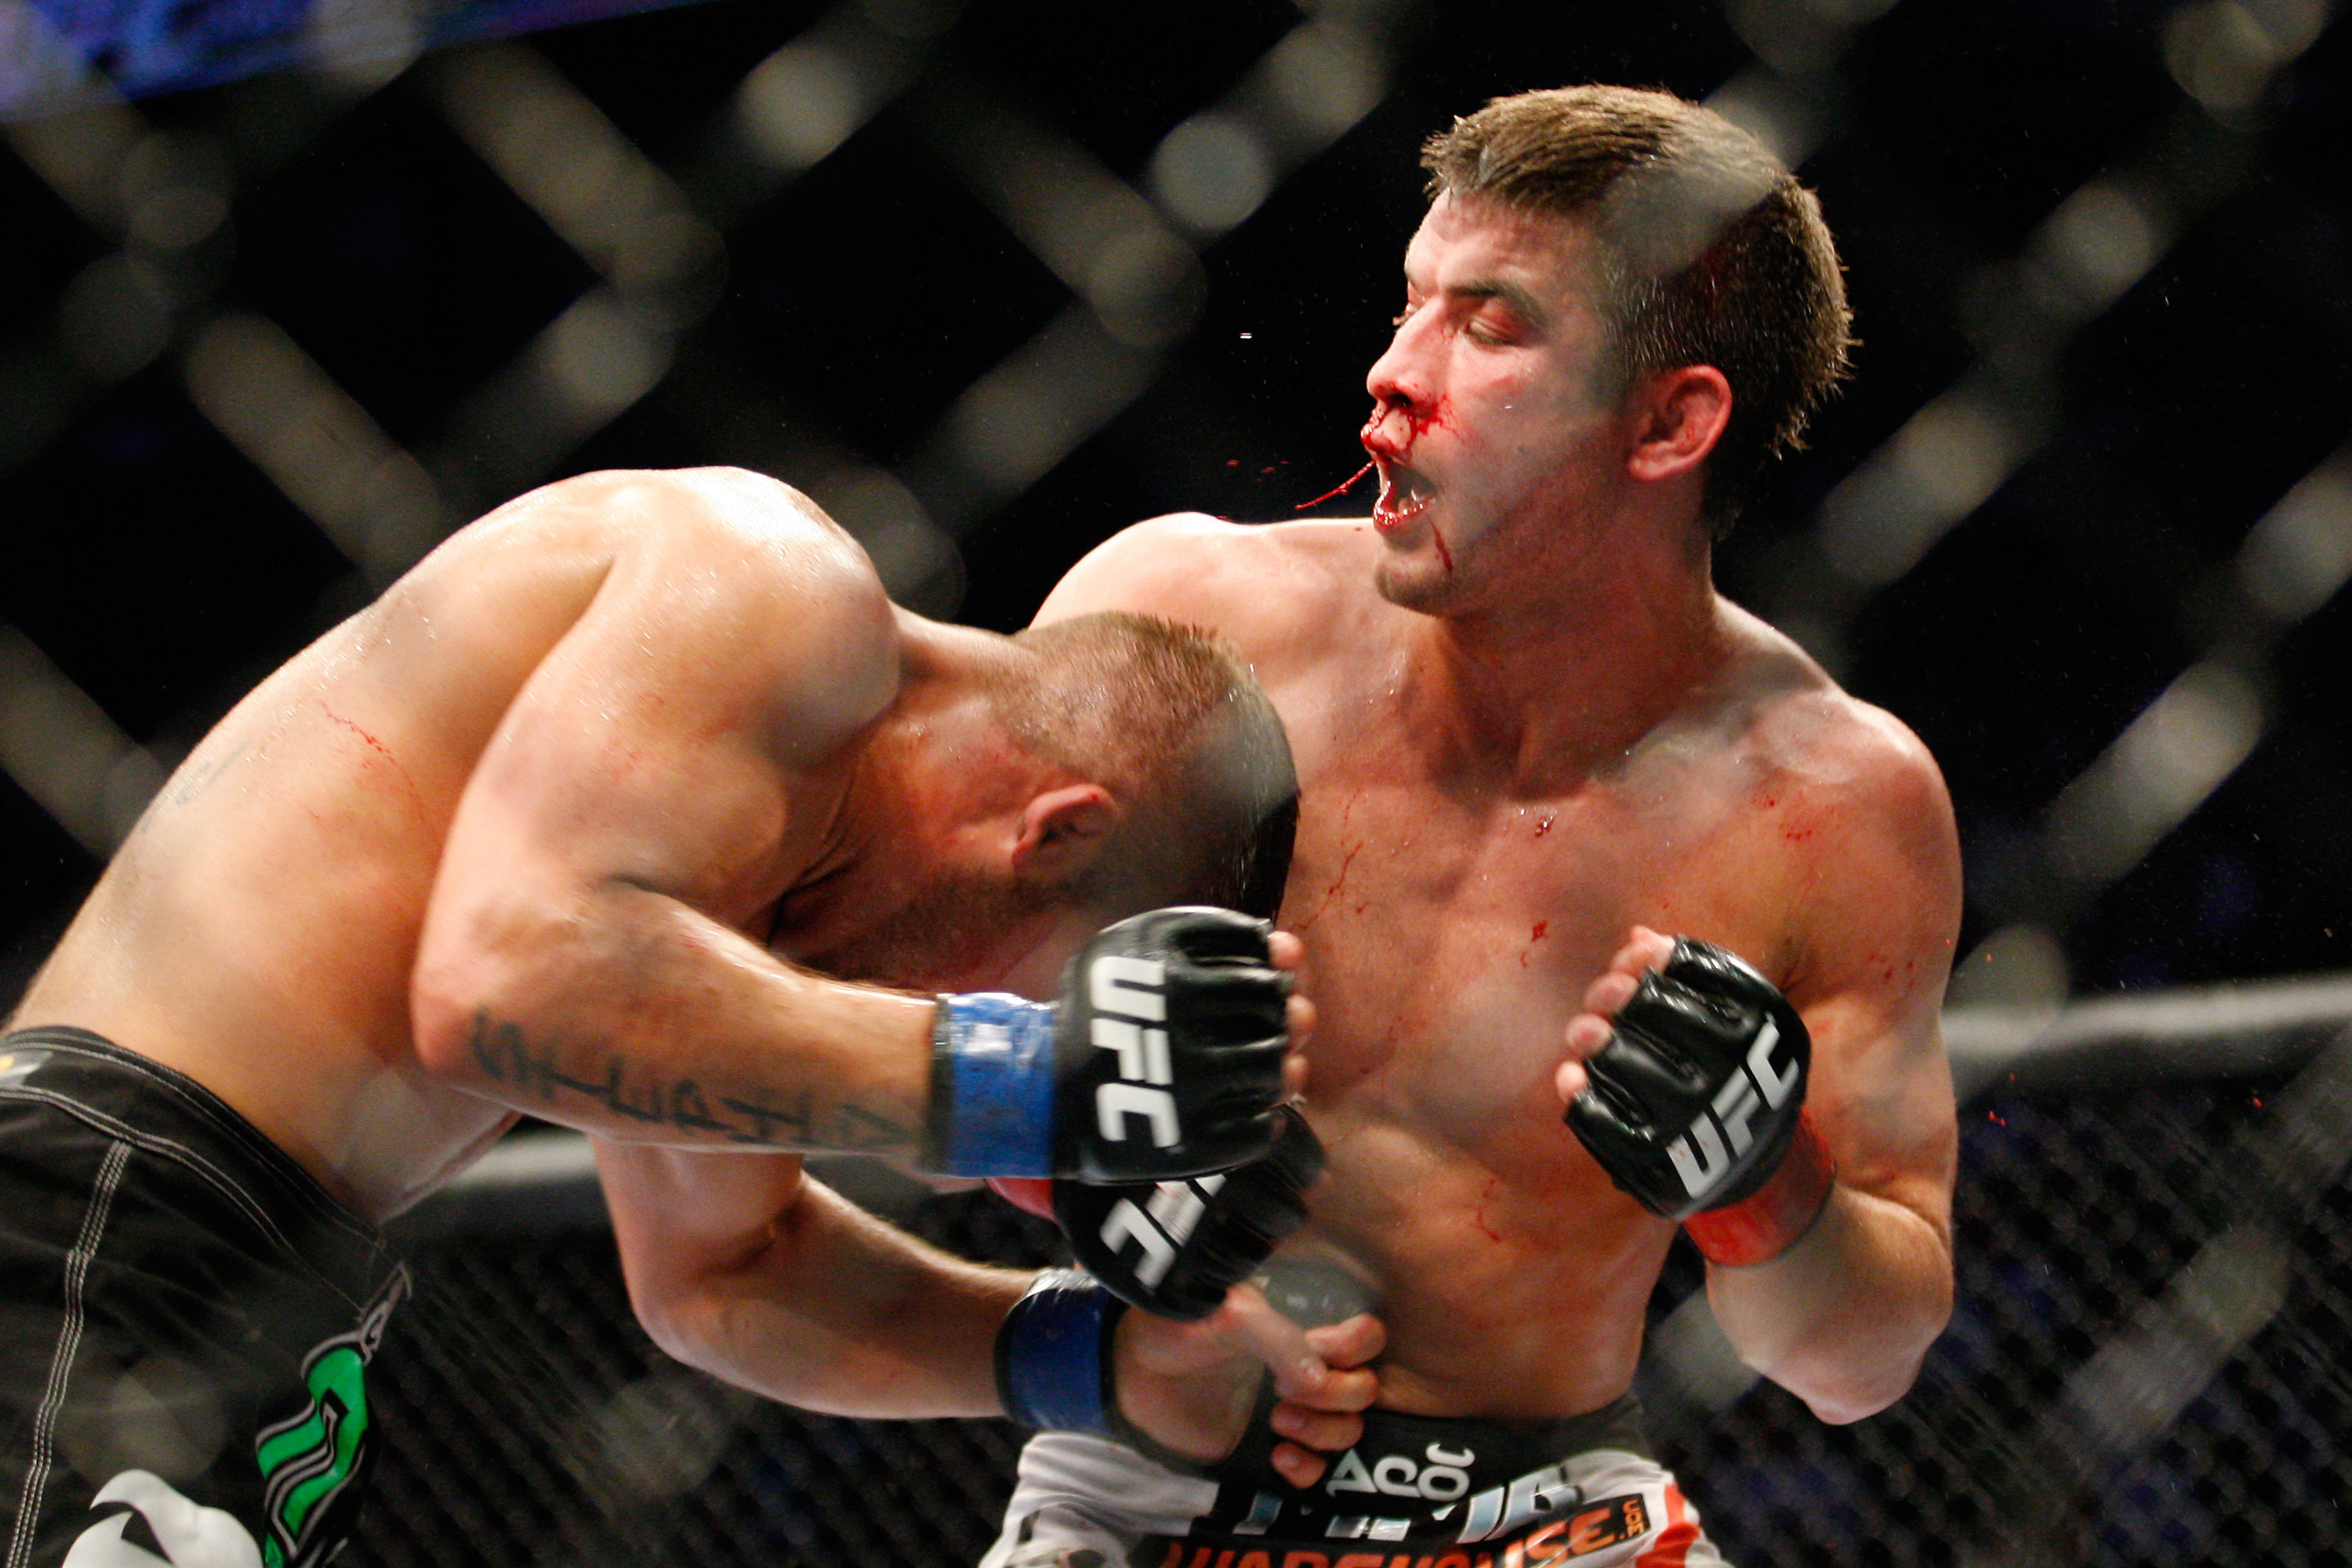 MONTREAL- MAY 8: Jeremy Stephens (L) punches Sam Stout in the stomach in their lightweight 'swing' bout at UFC 113 at Bell Centre on May 8, 2010 in Montreal, Quebec, Canada.  (Photo by Richard Wolowicz/Getty Images)